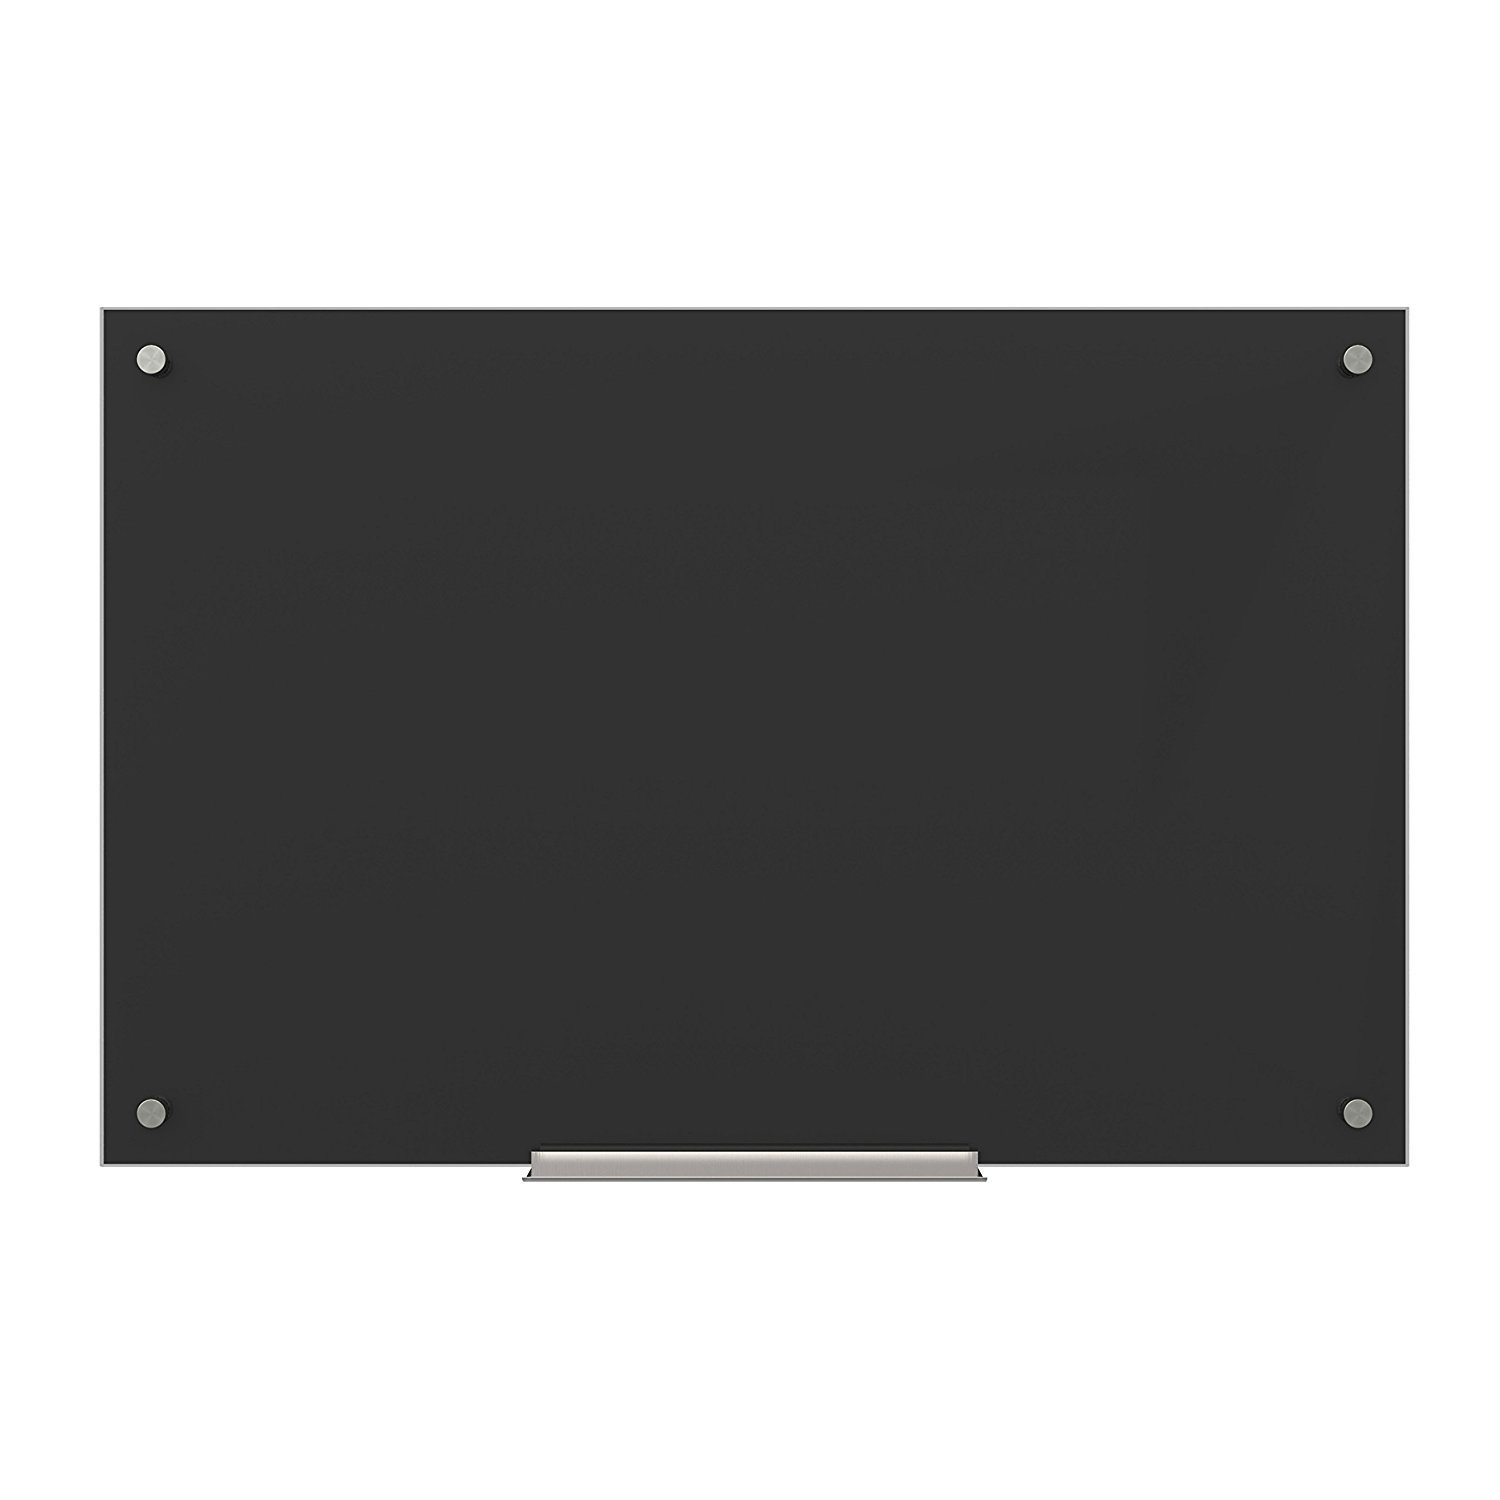 U Brands Glass Dry Erase Board, 36 x 24 Inches, Black Non-Magnetic Surface, Frameless by U Brands